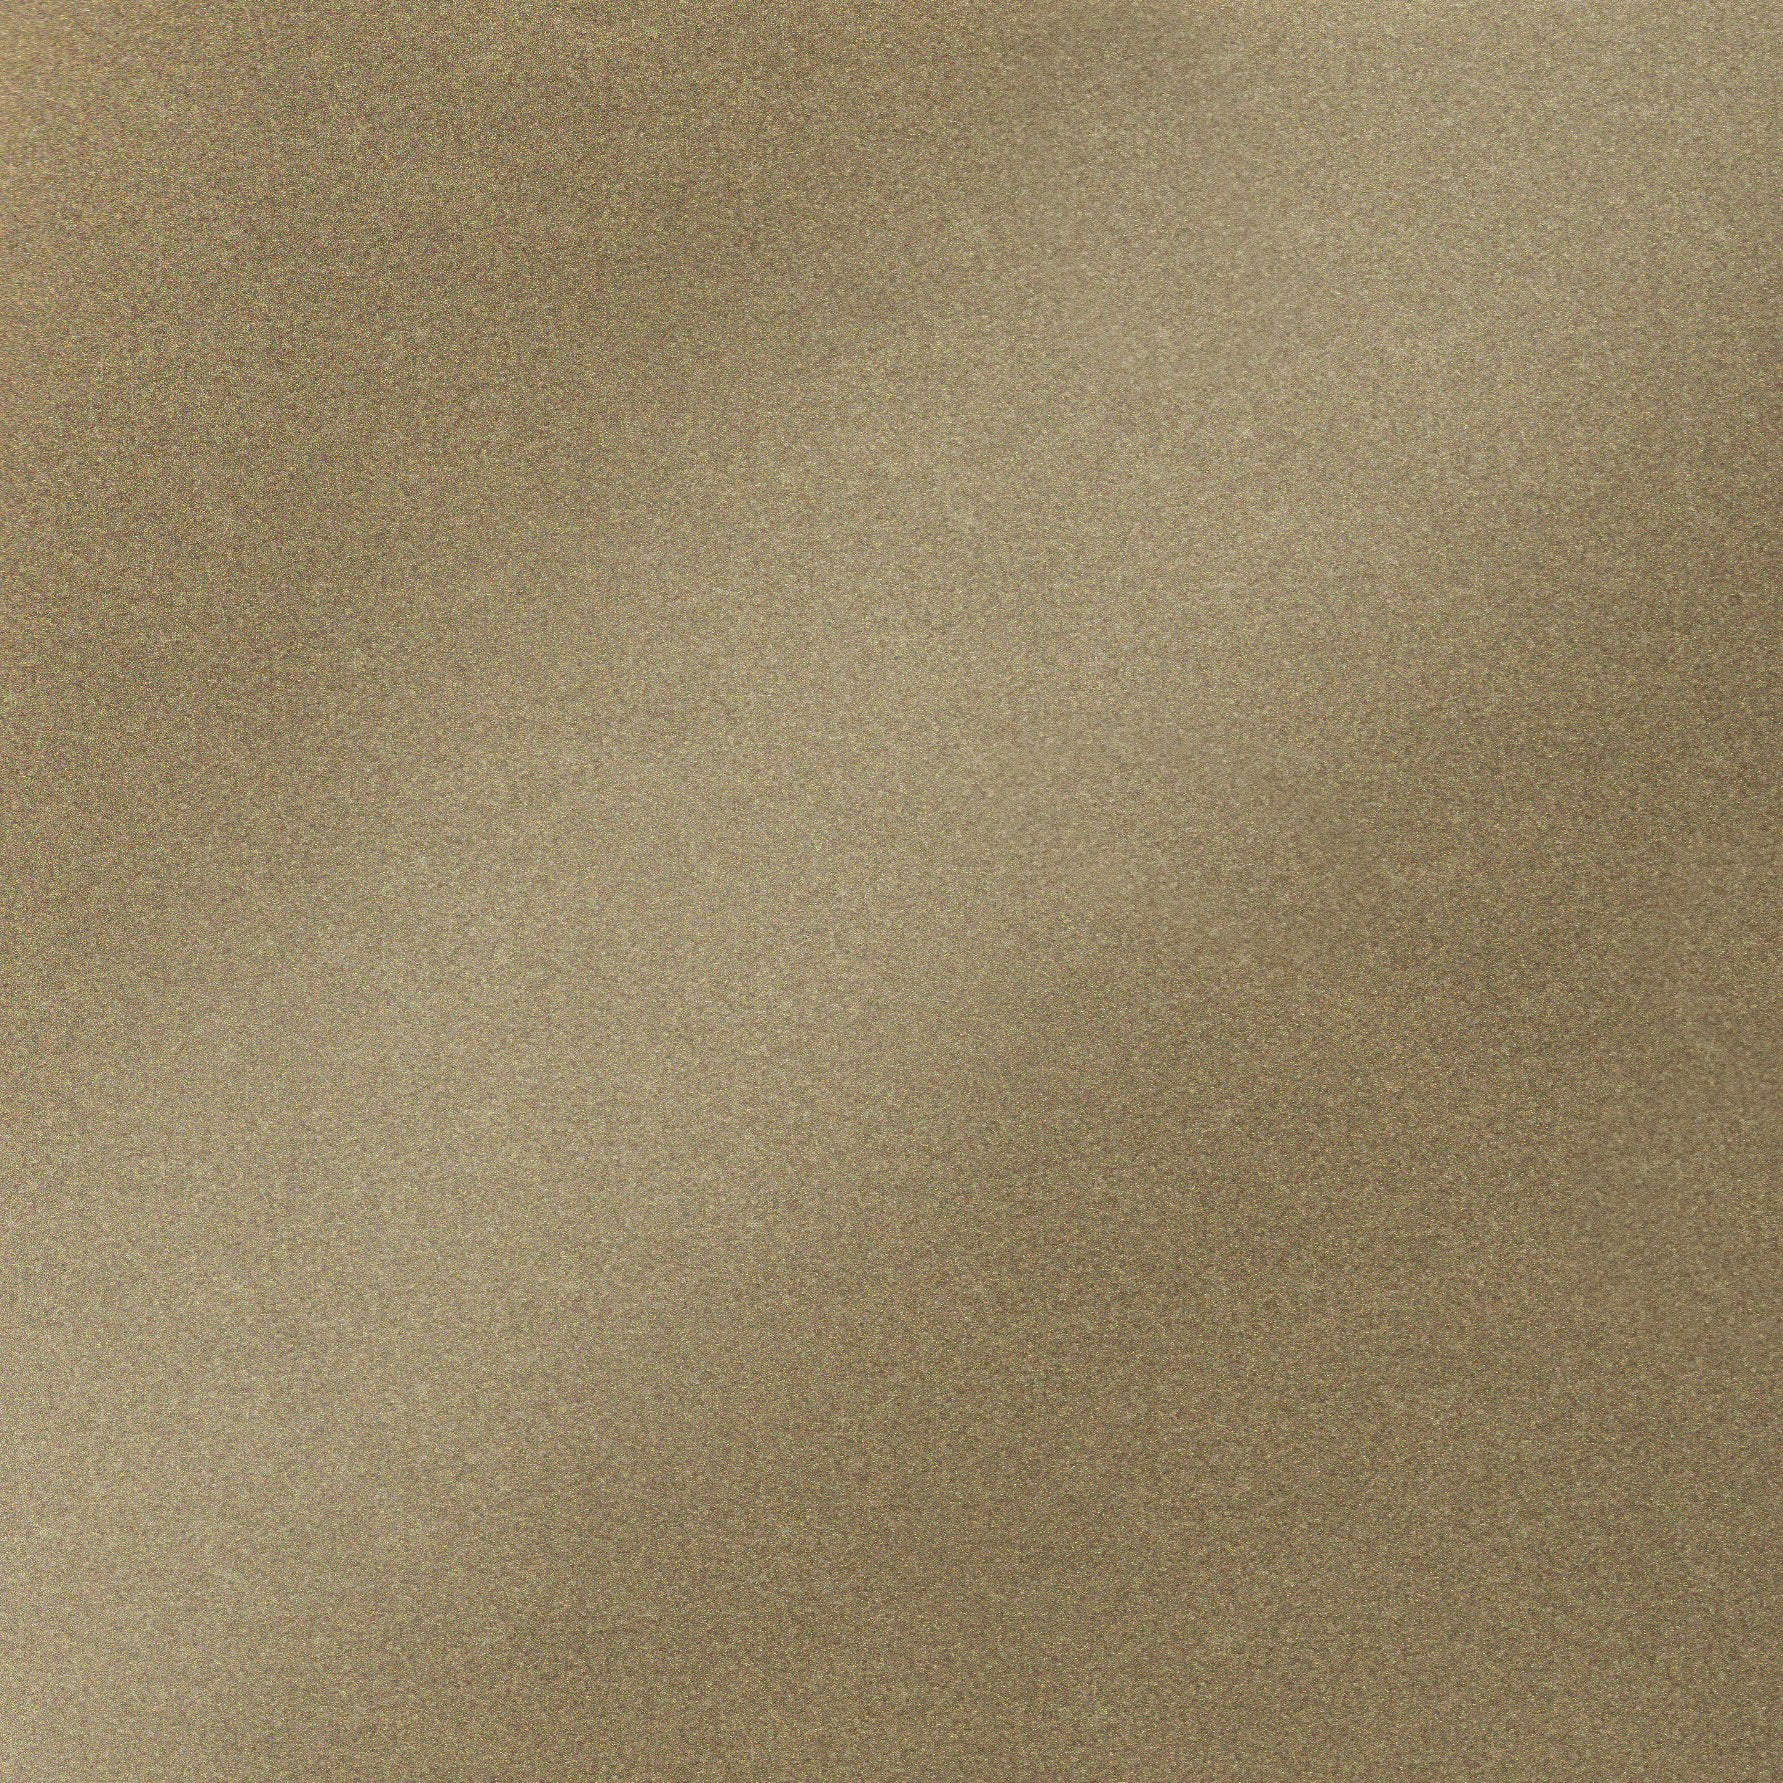 Light gold metallic craft vinyl